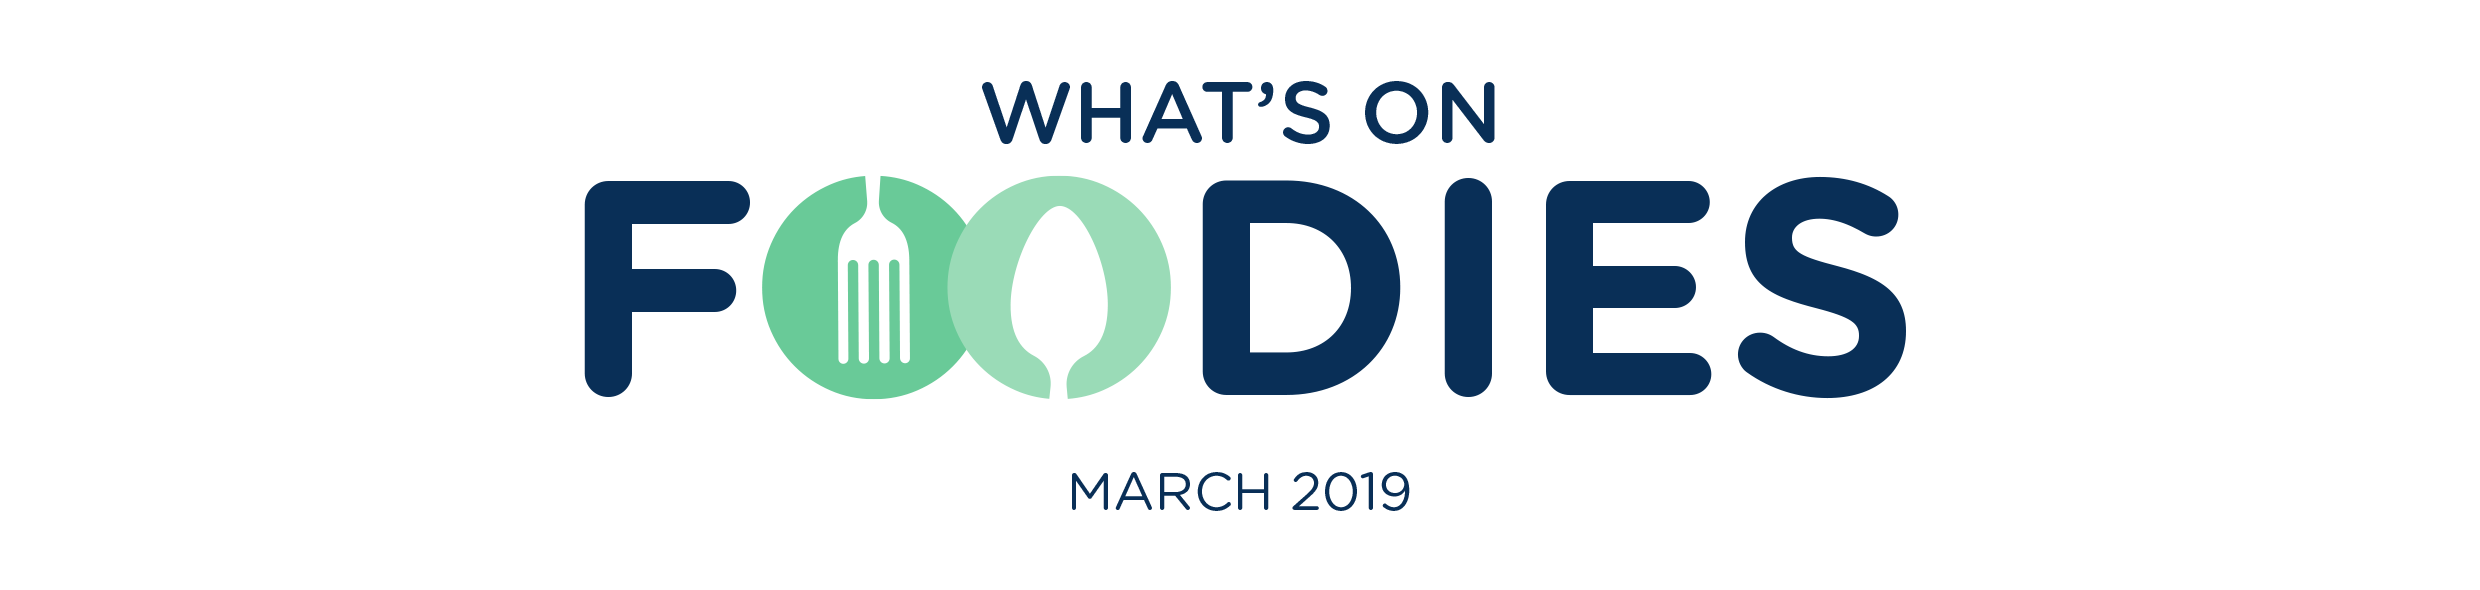 What's On Foodies March 2019